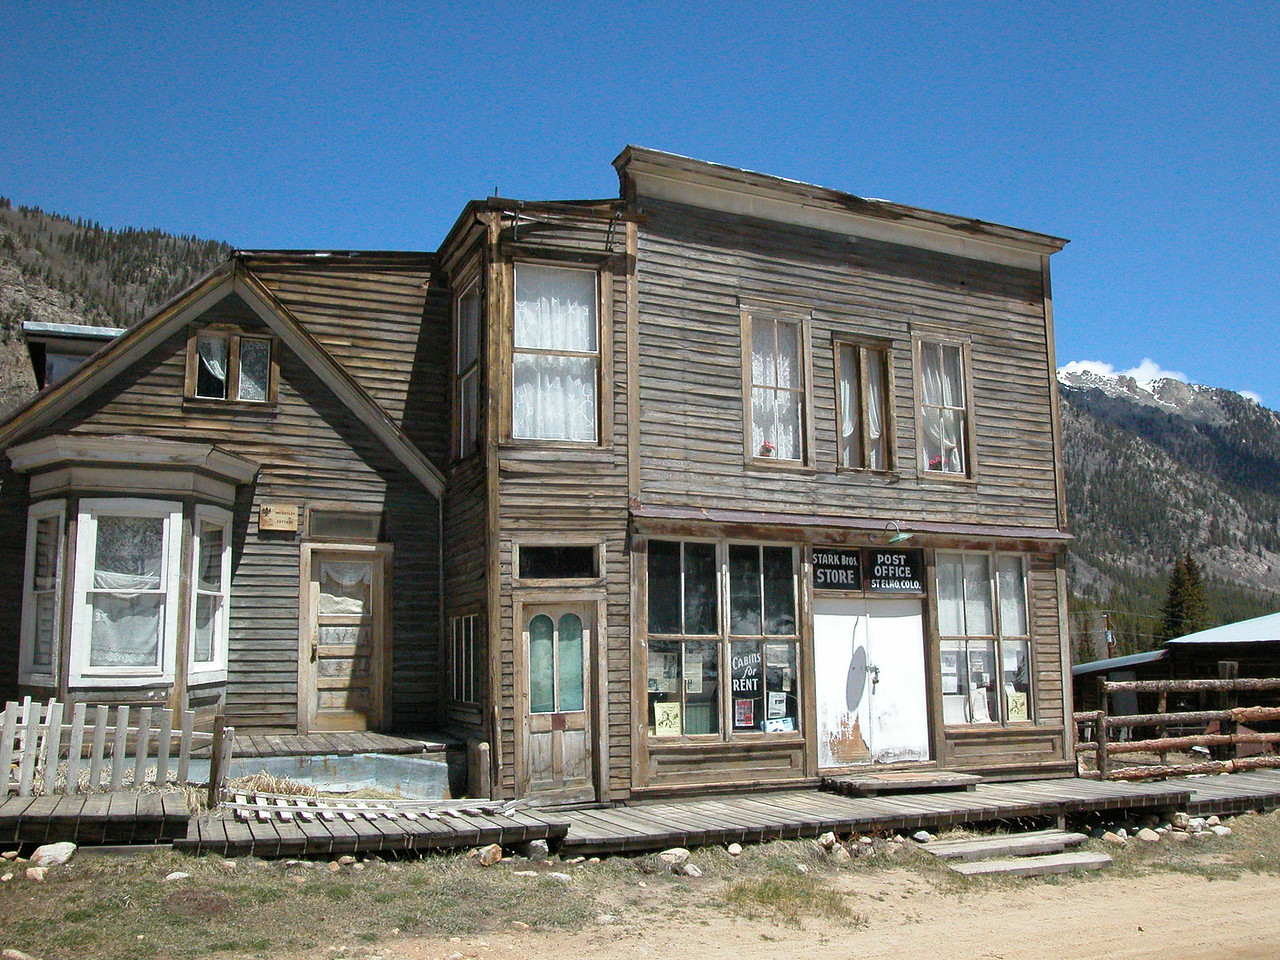 One of the main buildings in what is left of this town, set up for mining gold or silver during the late 1800s(?)